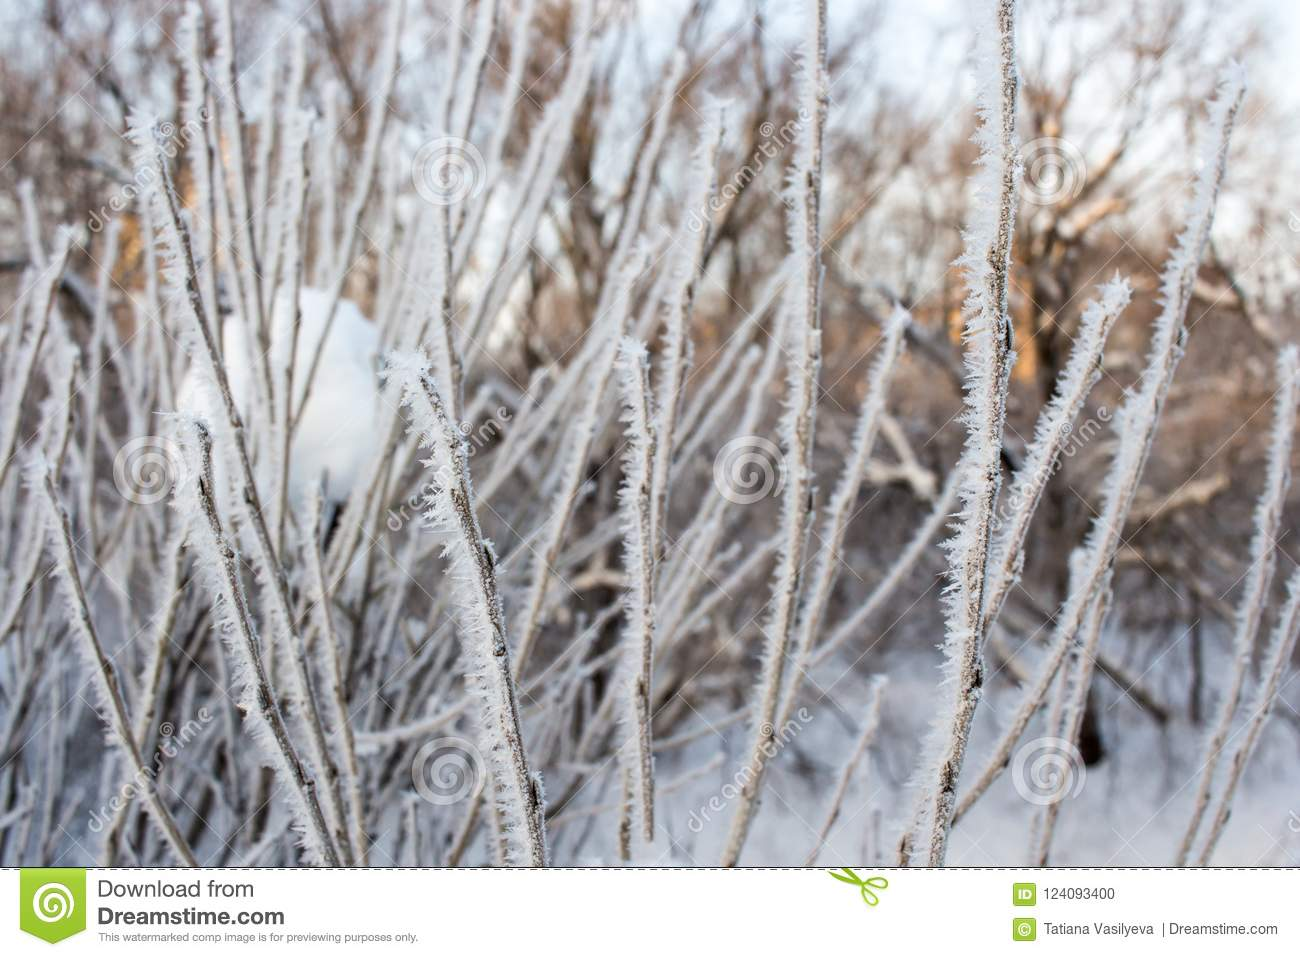 Crystallized fairy tree. Wintr background.